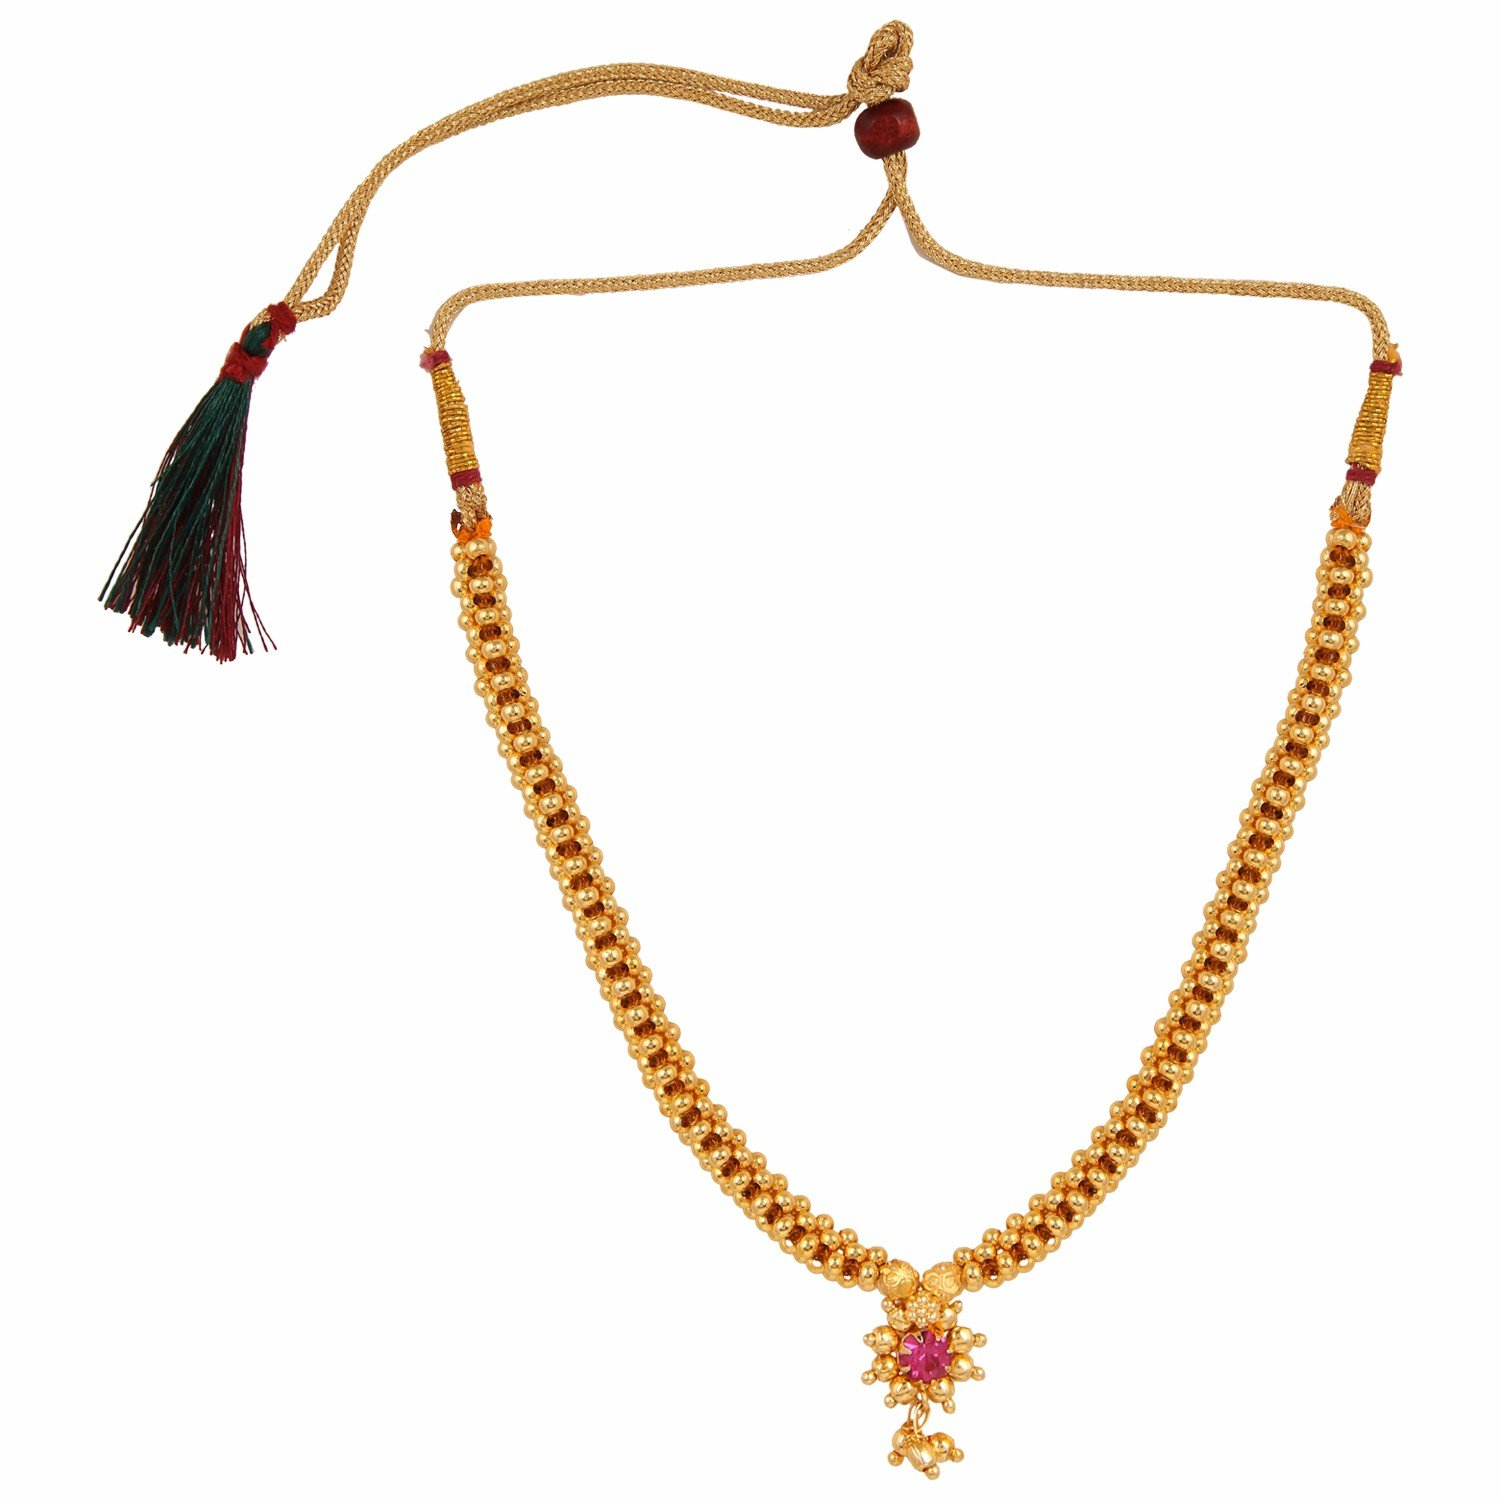 Efulgenz Indian Bollywood Traditional White Red Rhinestone Faux Ruby Pearl Designer Thusi Style Necklace in Antique 18K Gold Tone for Women and Girls (Style 1)